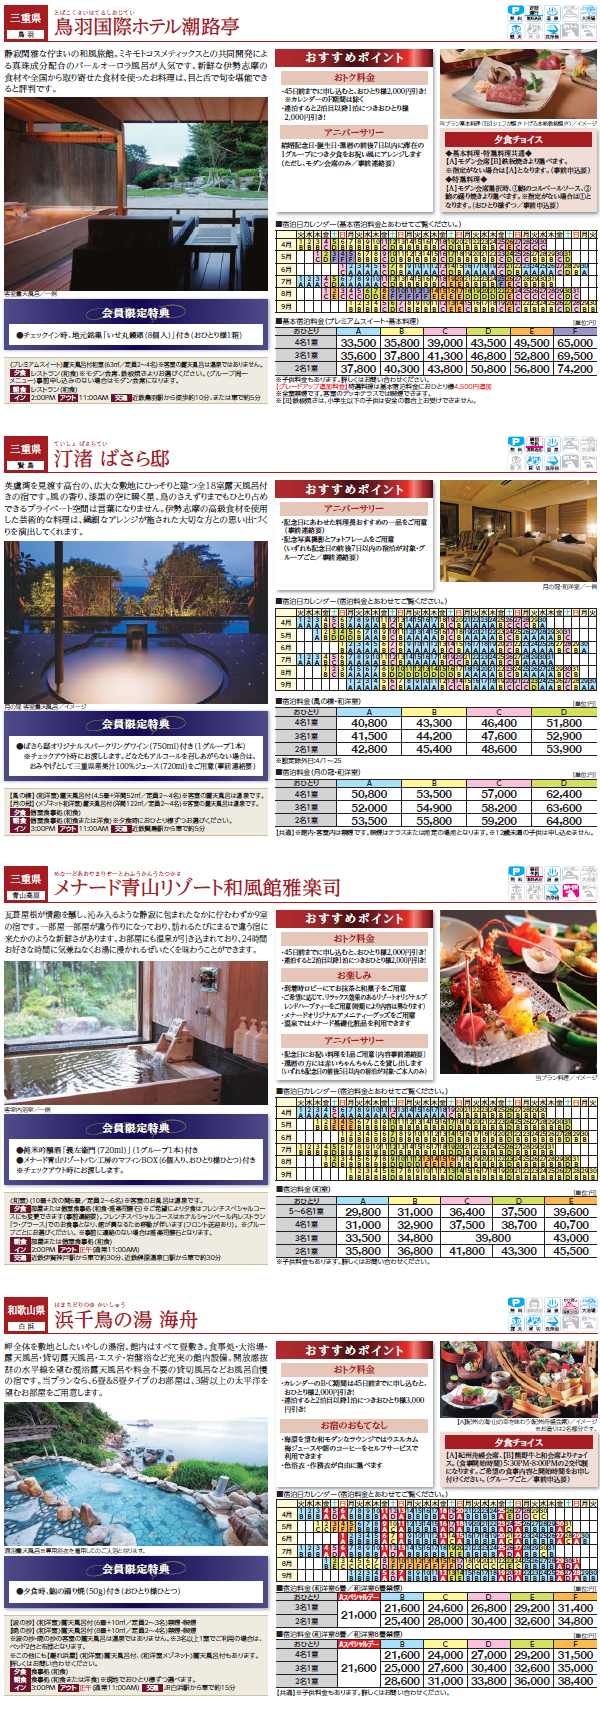 stay_plan_ryokan_1403_16